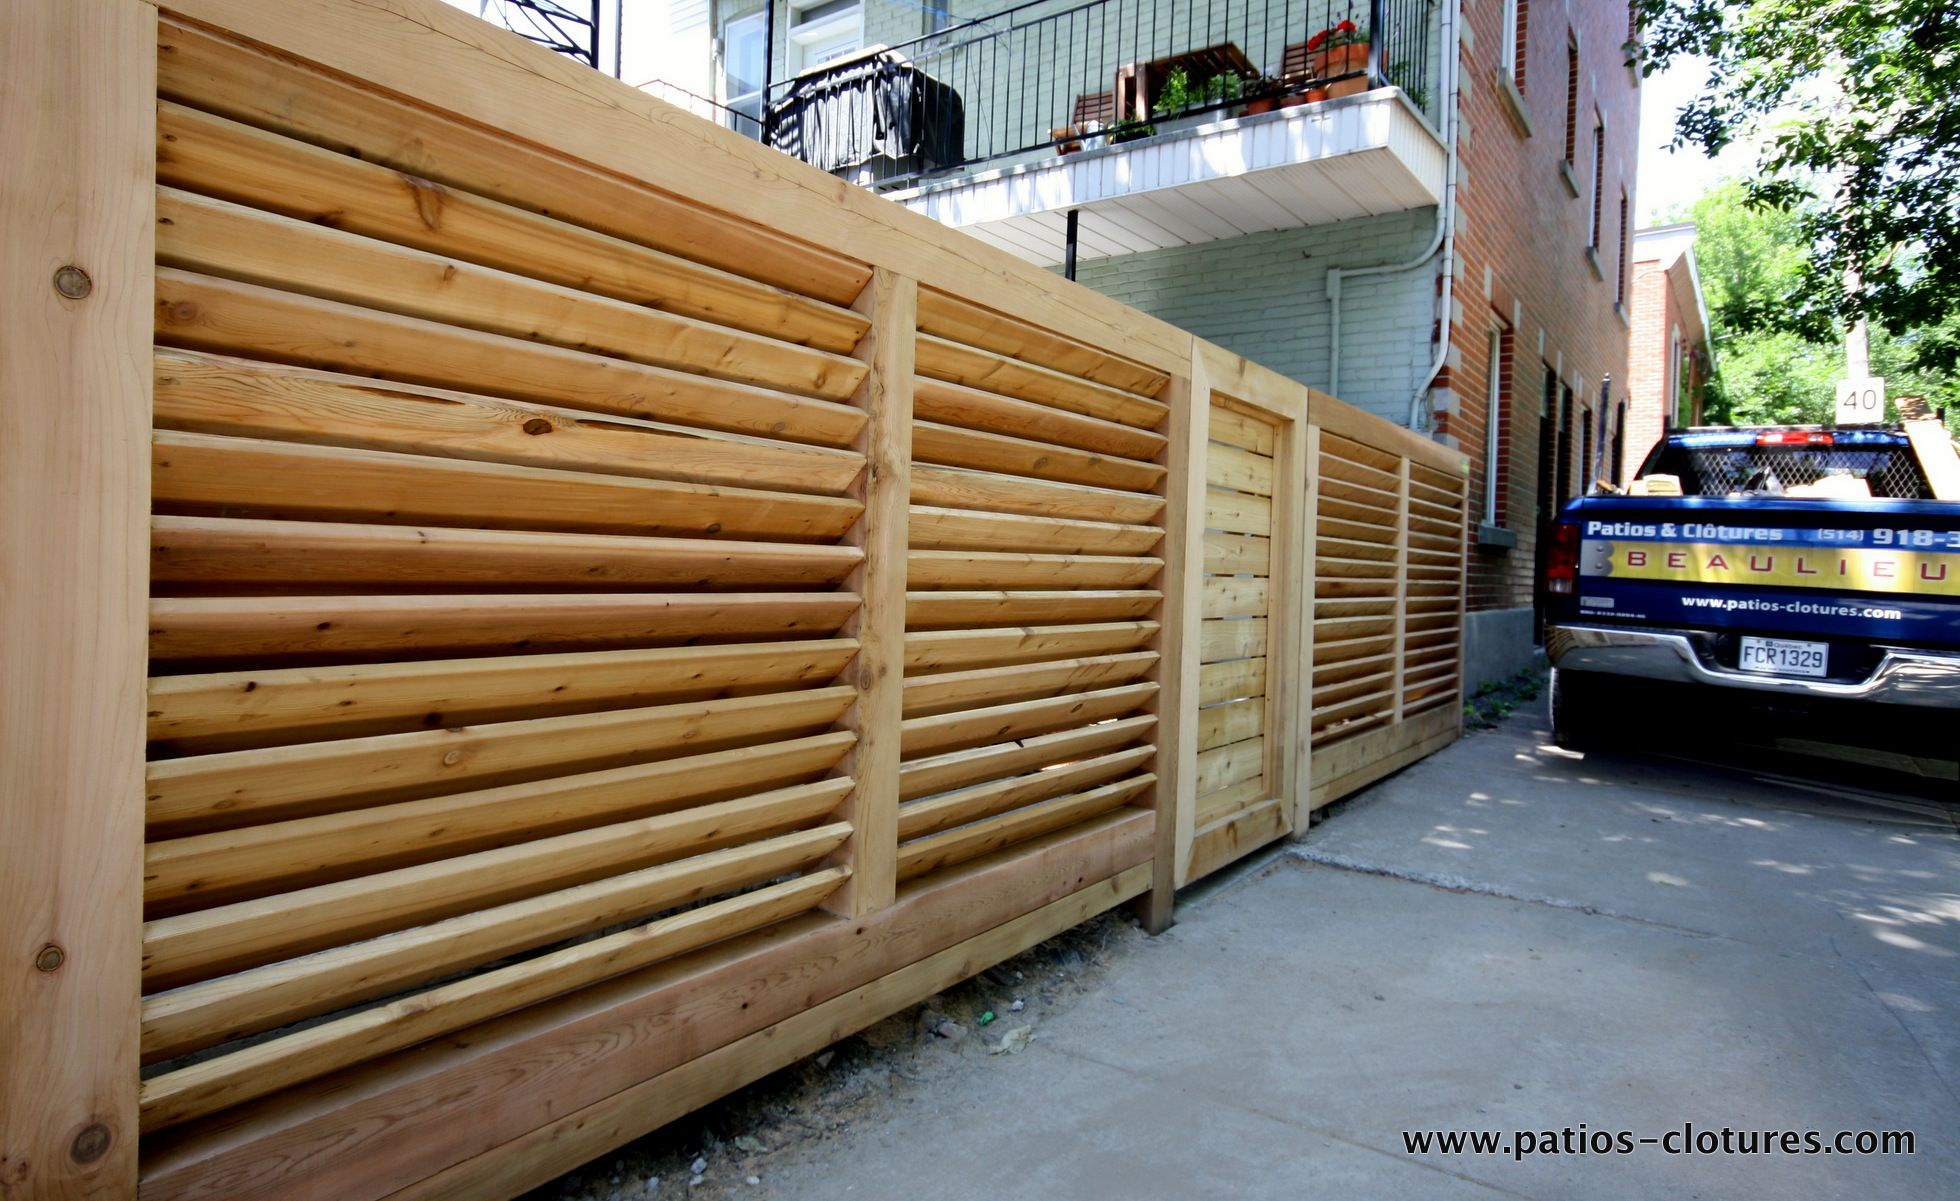 Robust horizontal louvered fence the posts the top and bottom robust horizontal louvered fence the posts the top and bottom horizontal rails are made baanklon Gallery